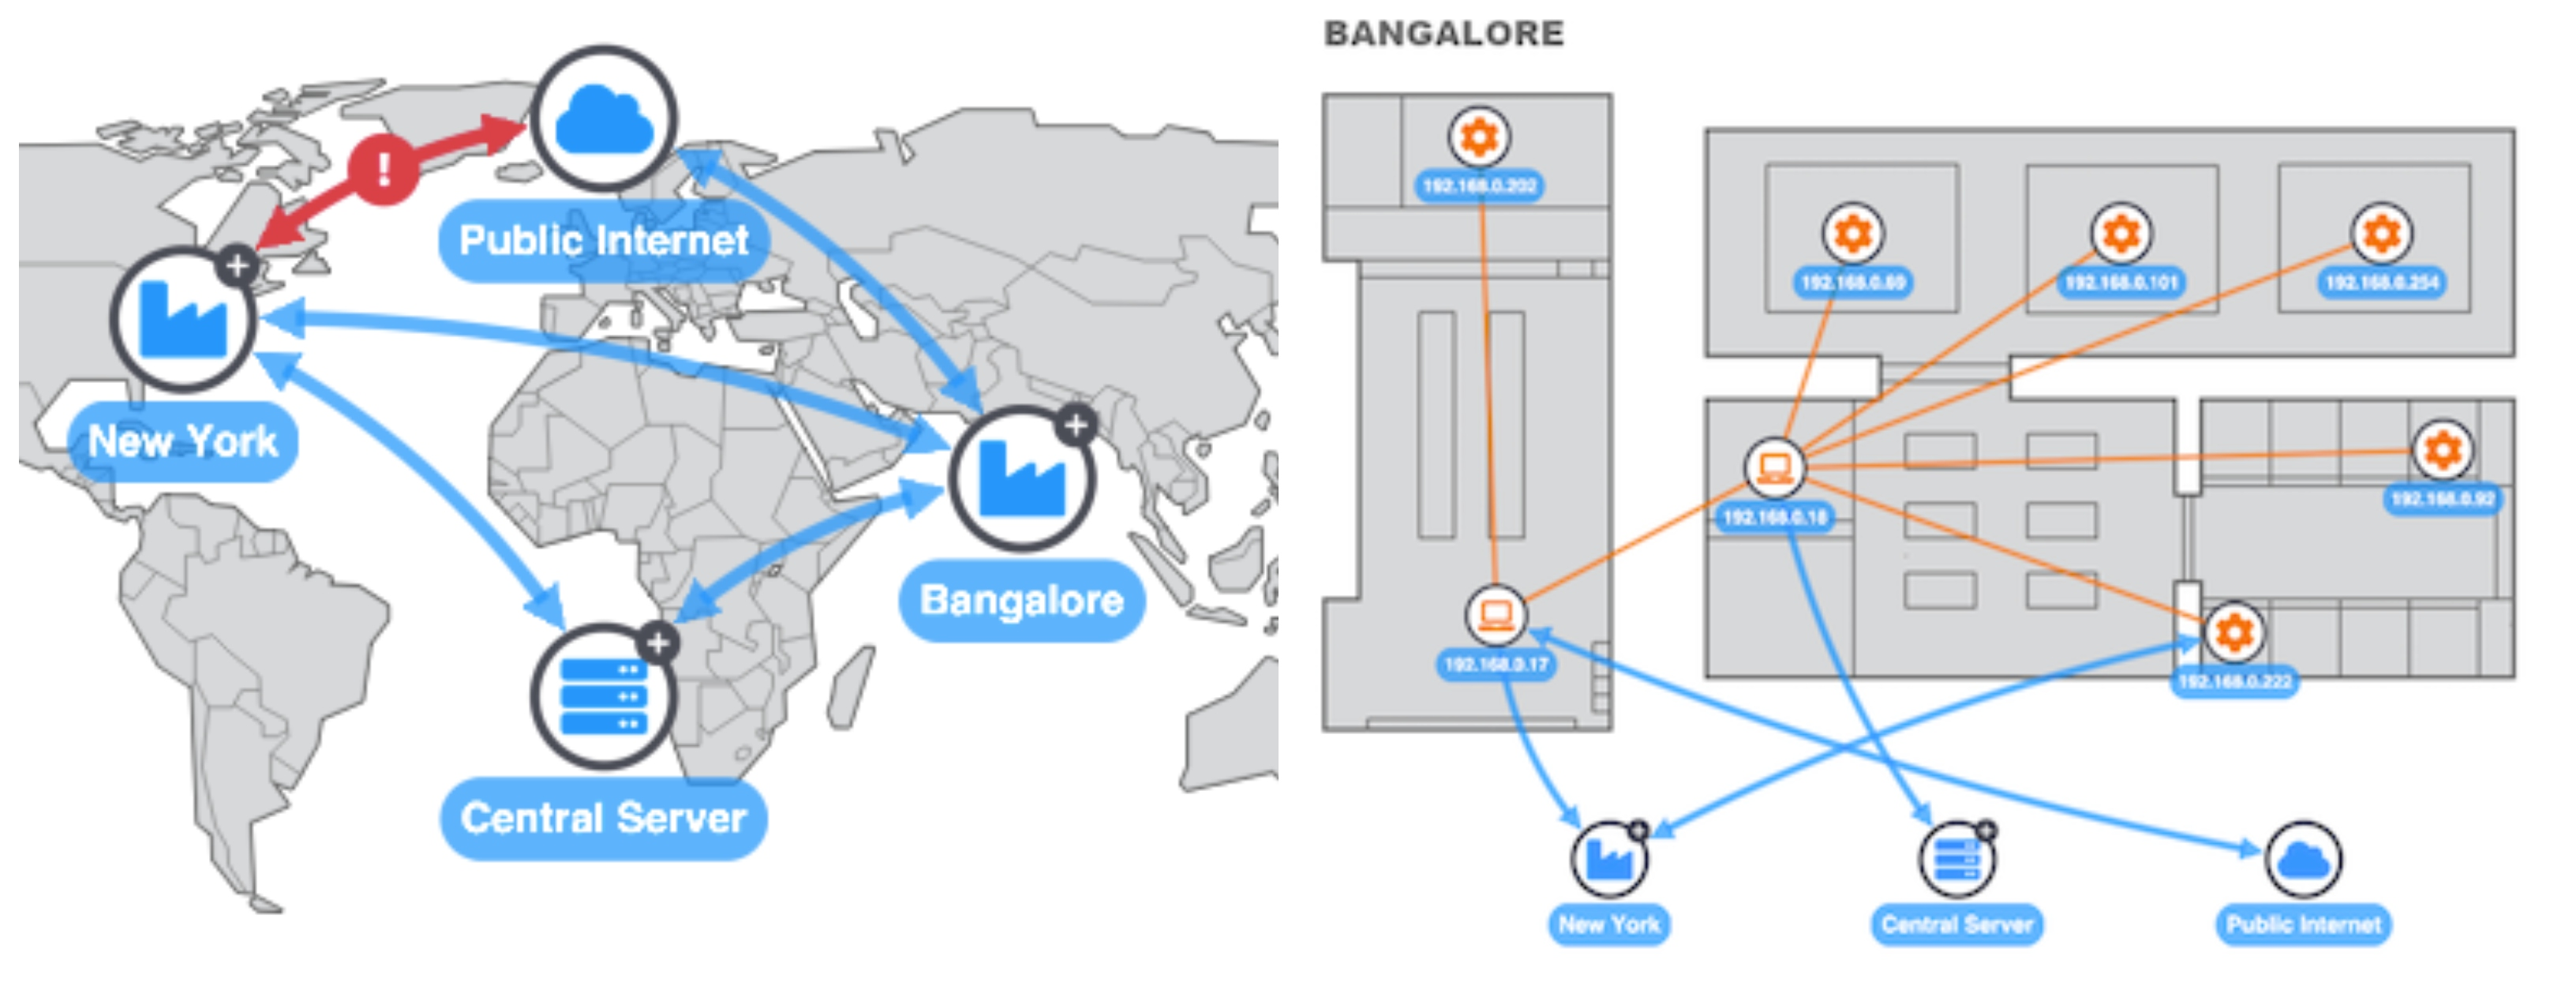 KeyLines 5.0 supports images as maps: a radical new way to visualize location data.